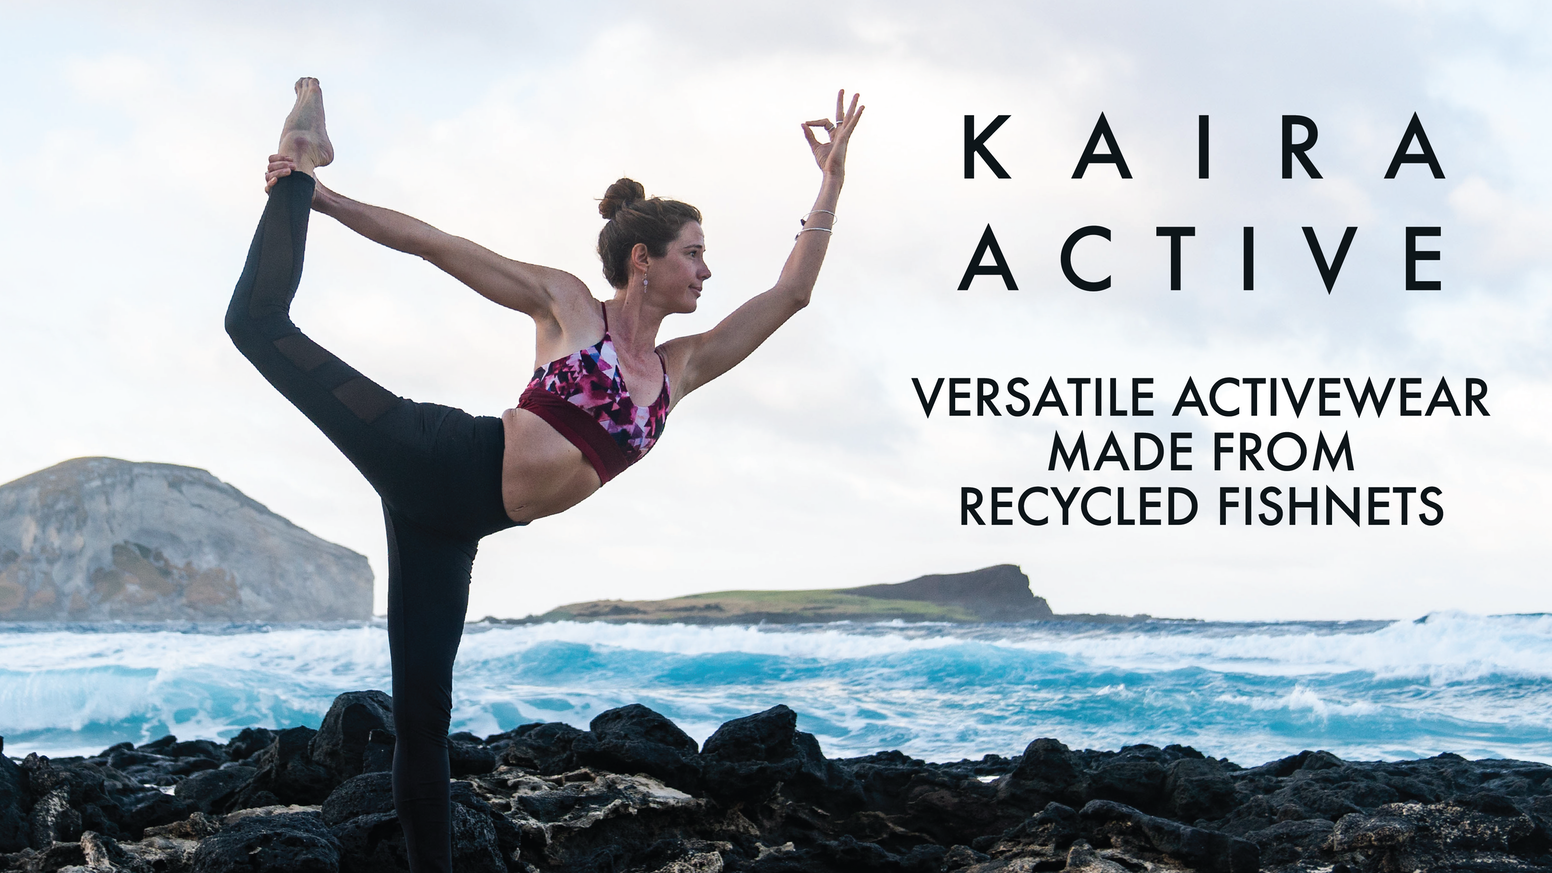 Kaira Active's mission is to create high quality, multifunctional, and sustainably made activewear for women that love the outdoors.